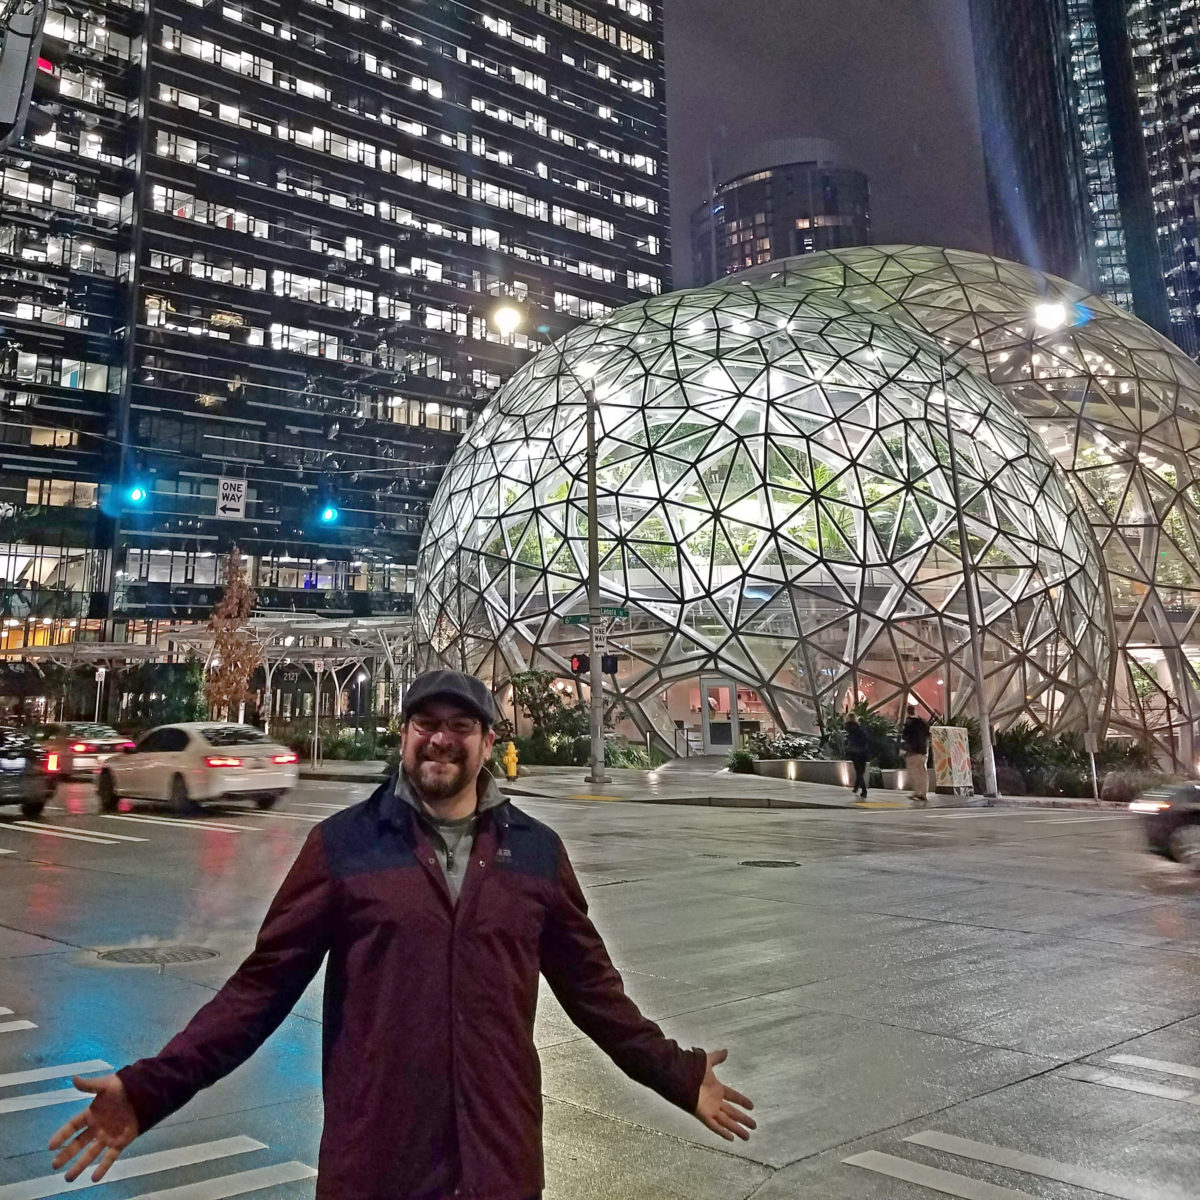 The Seattle Spheres